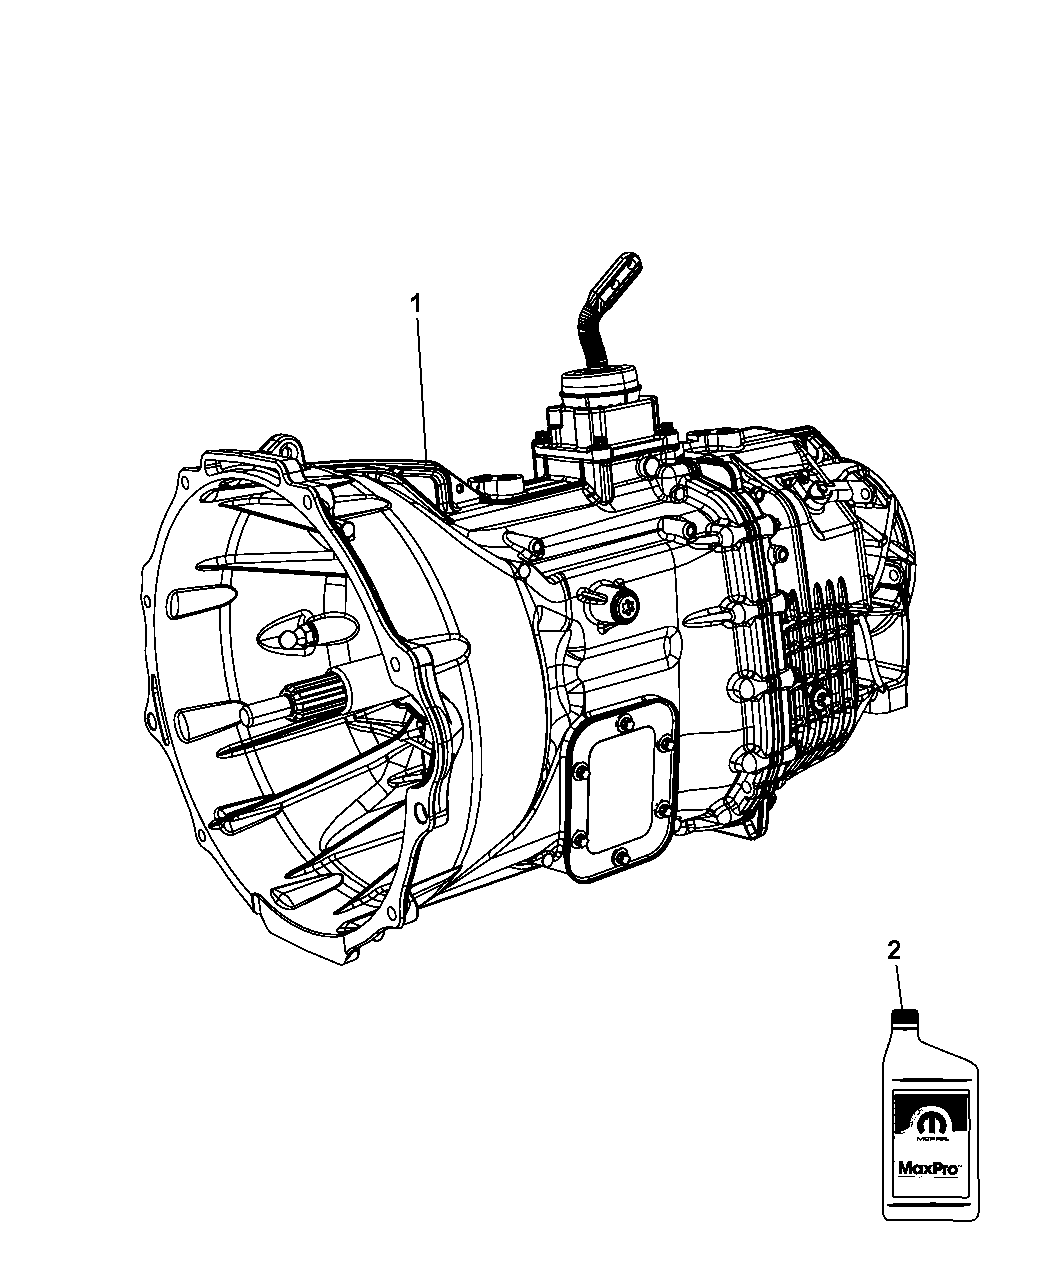 2015 Ram 4500 Transmission / Transaxle Assembly of Manual